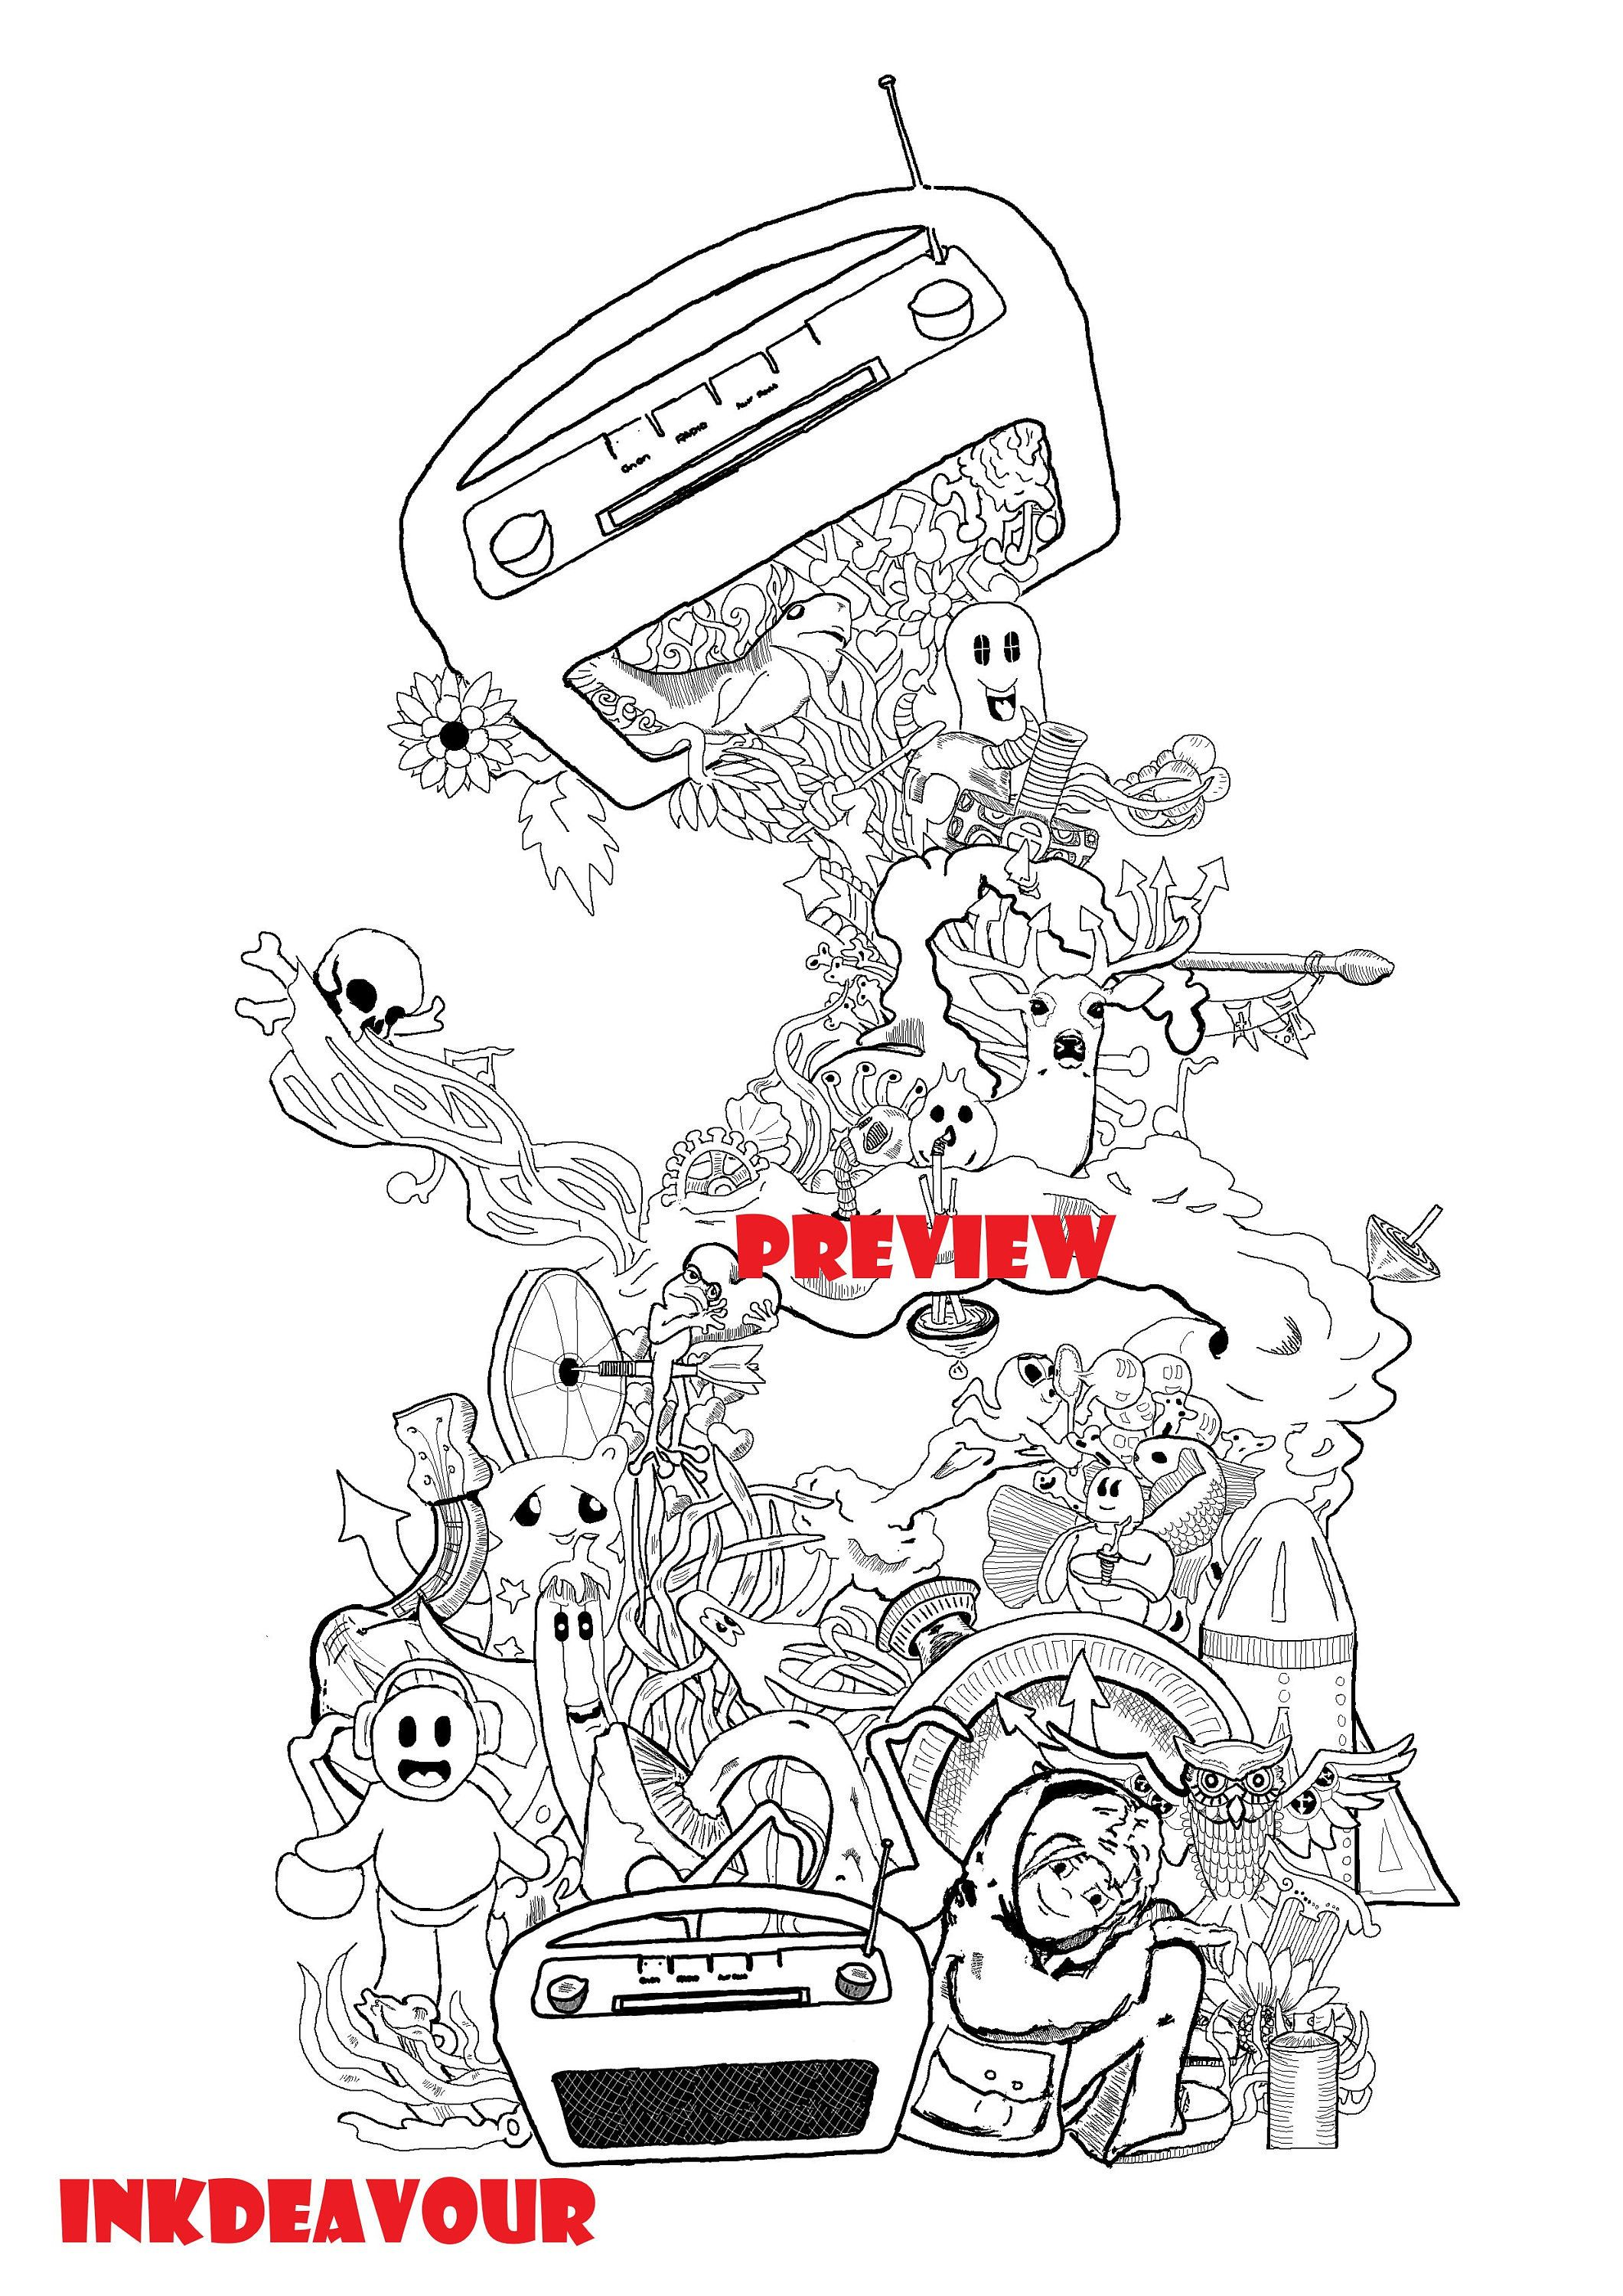 Doodle Coloring Pages Adultcoloring Kids Coloring Colouring